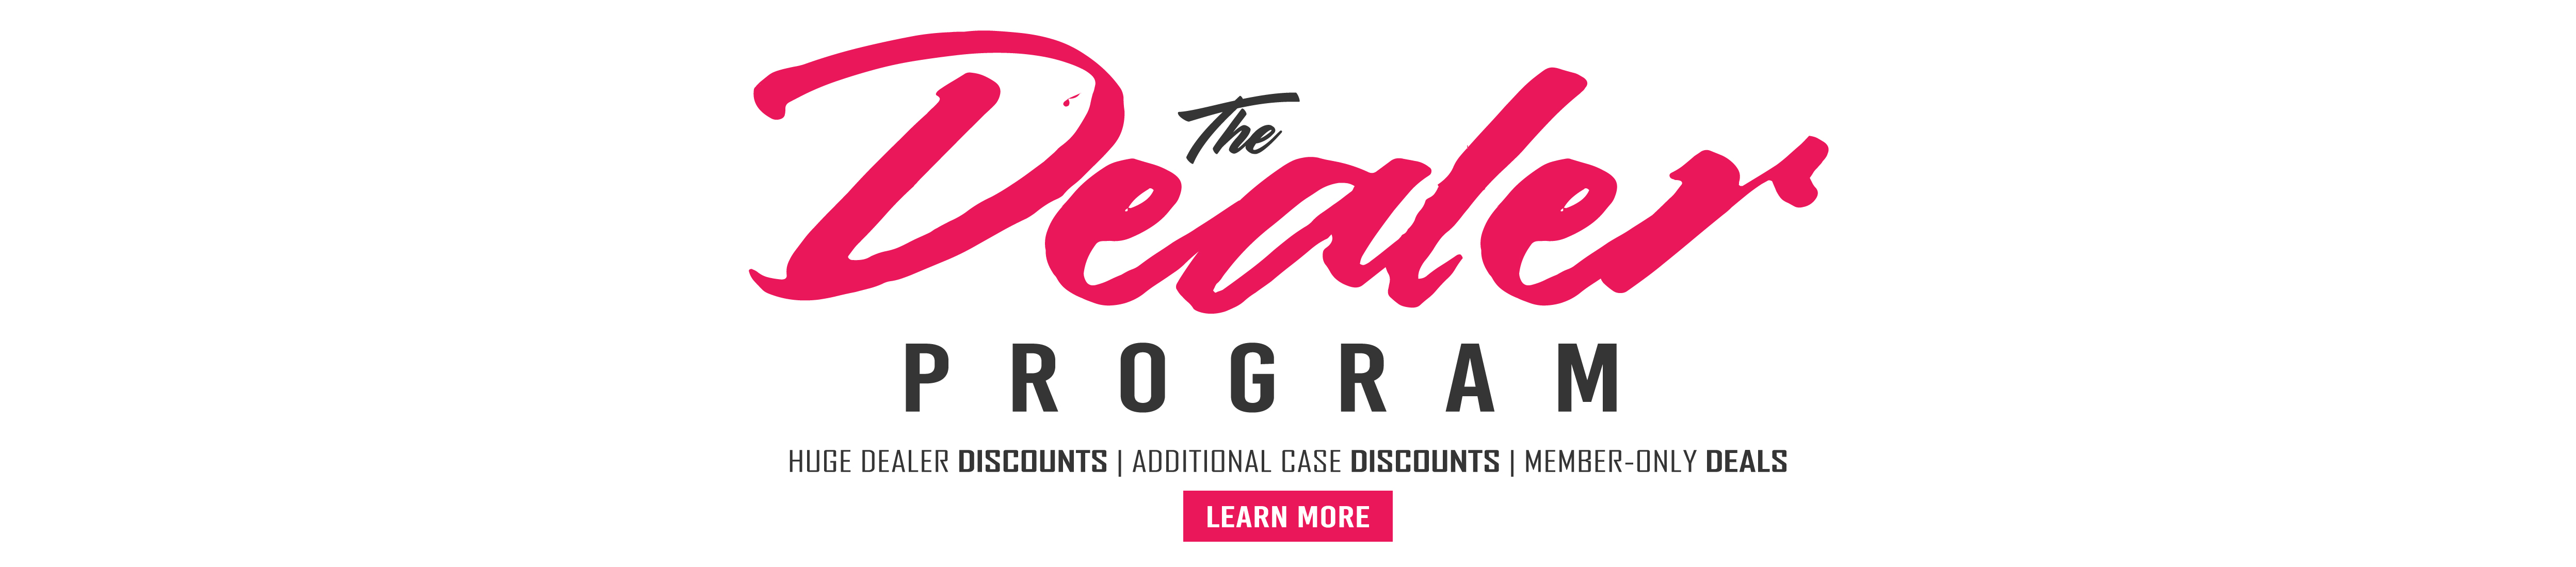 the-dealer-program-page-banner-big.jpg